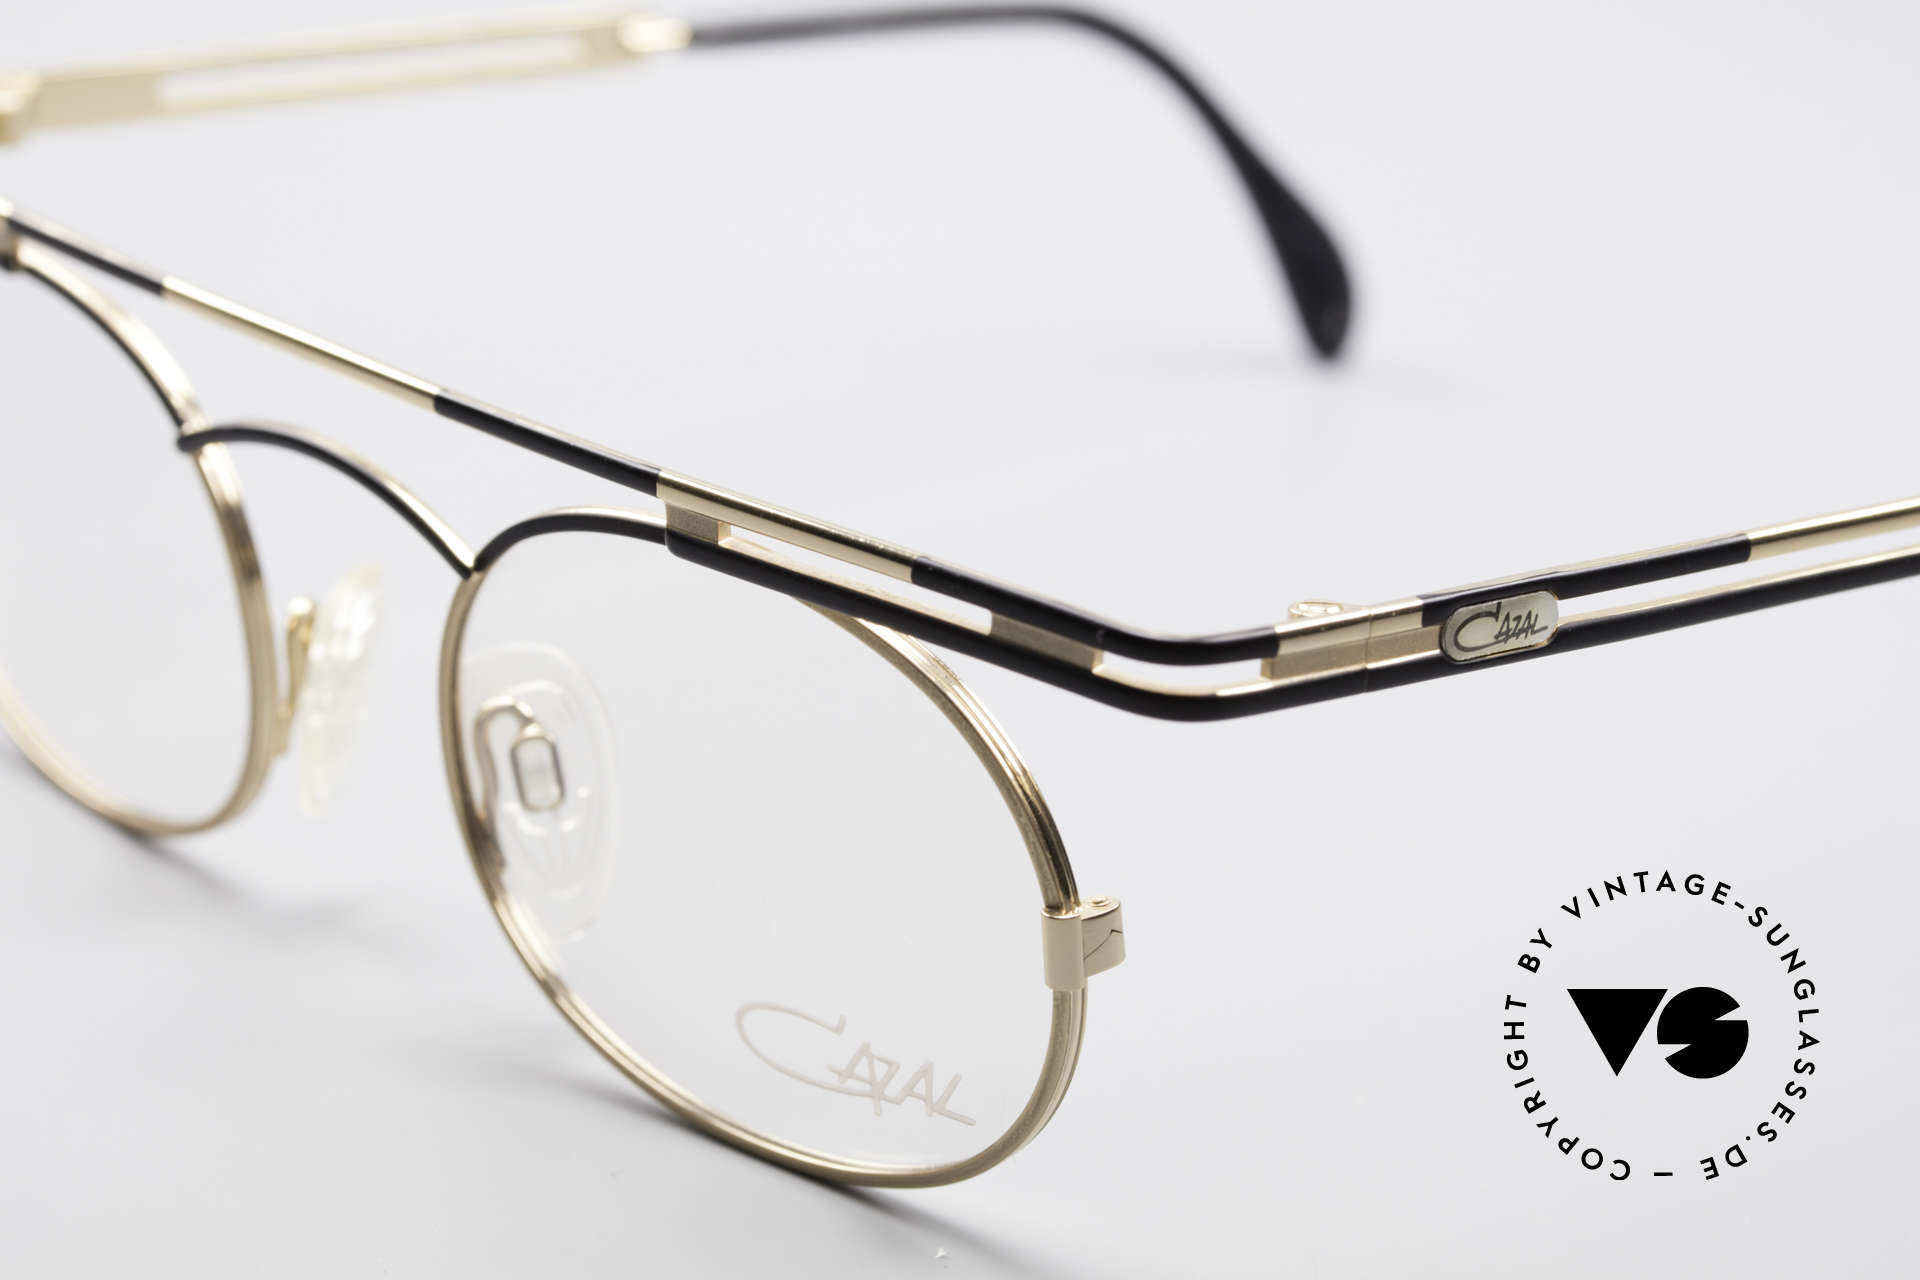 Cazal 761 Vintage Frame NO Retro Glasses, new old stock (like all our rare vintage Cazal specs), Made for Men and Women